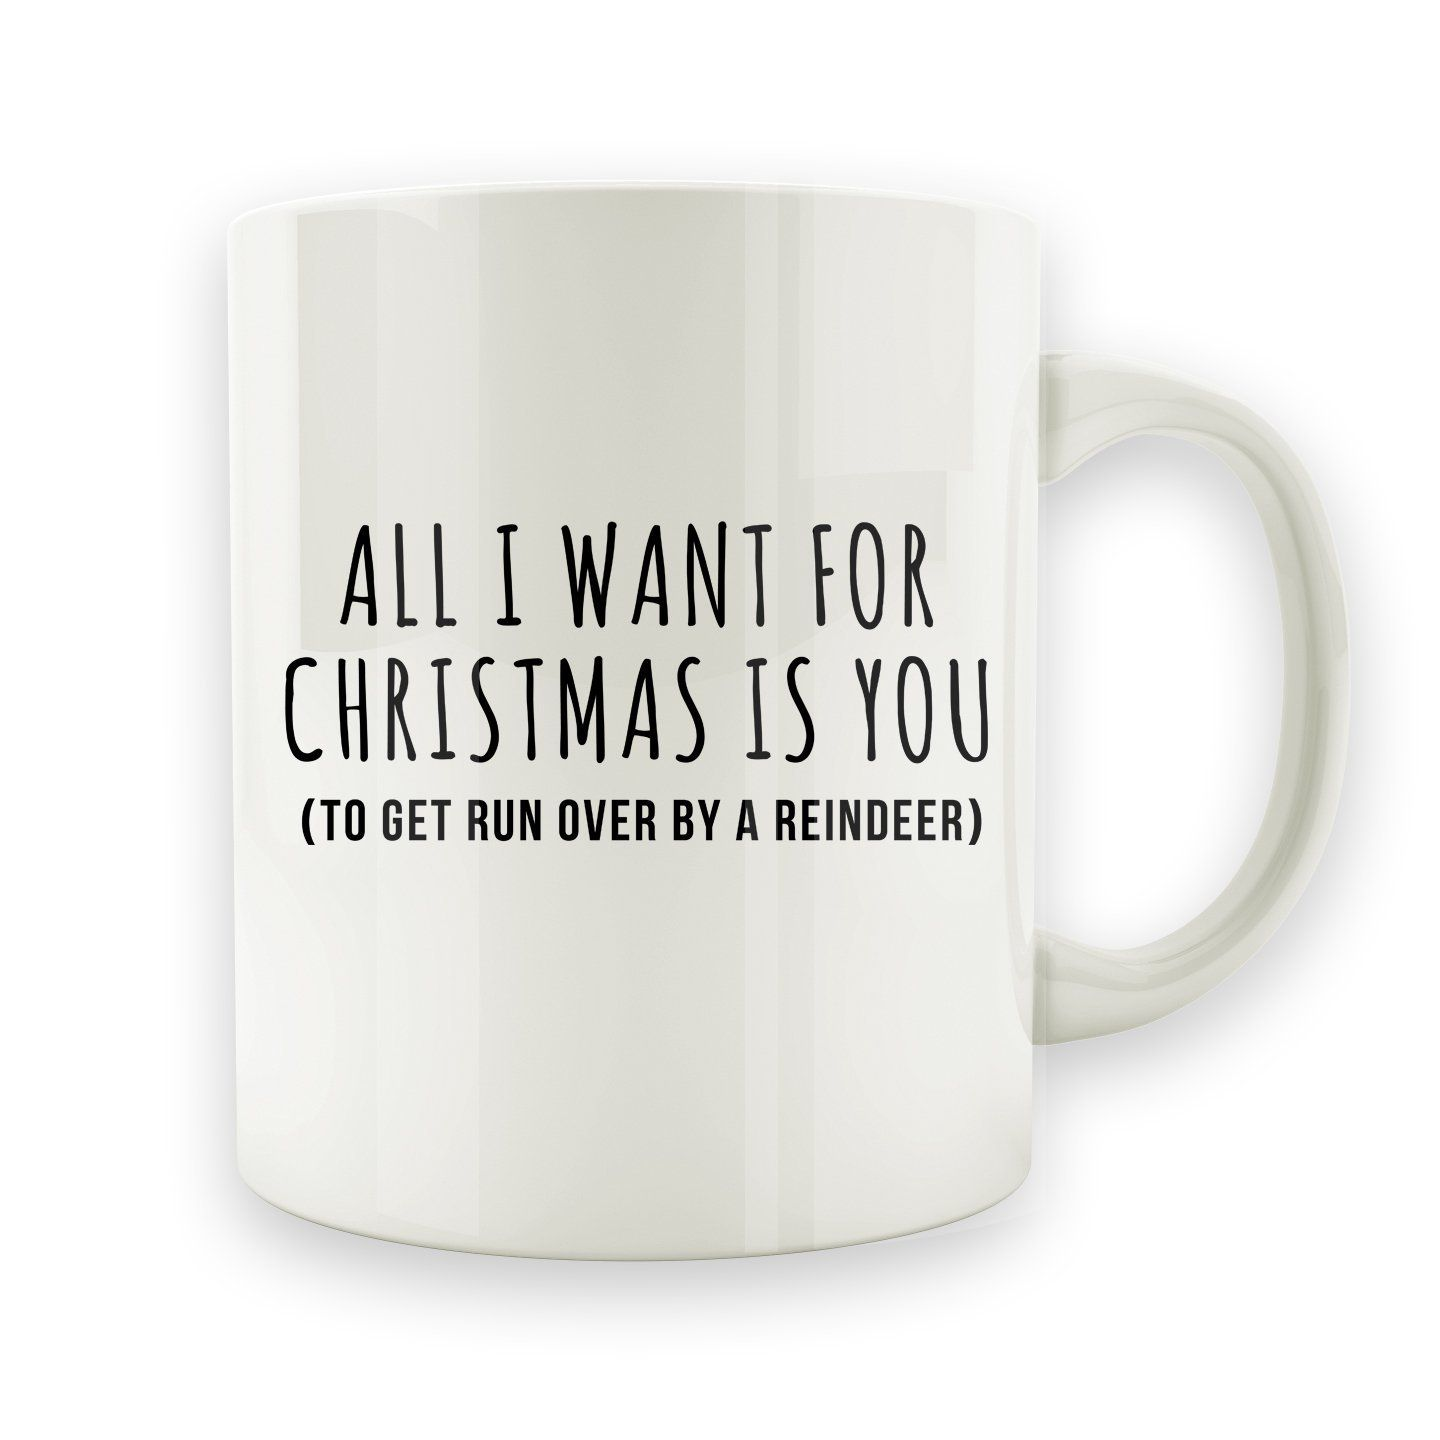 All I Want For Christmas Is You - Reindeer - 15oz Mug   Products ...